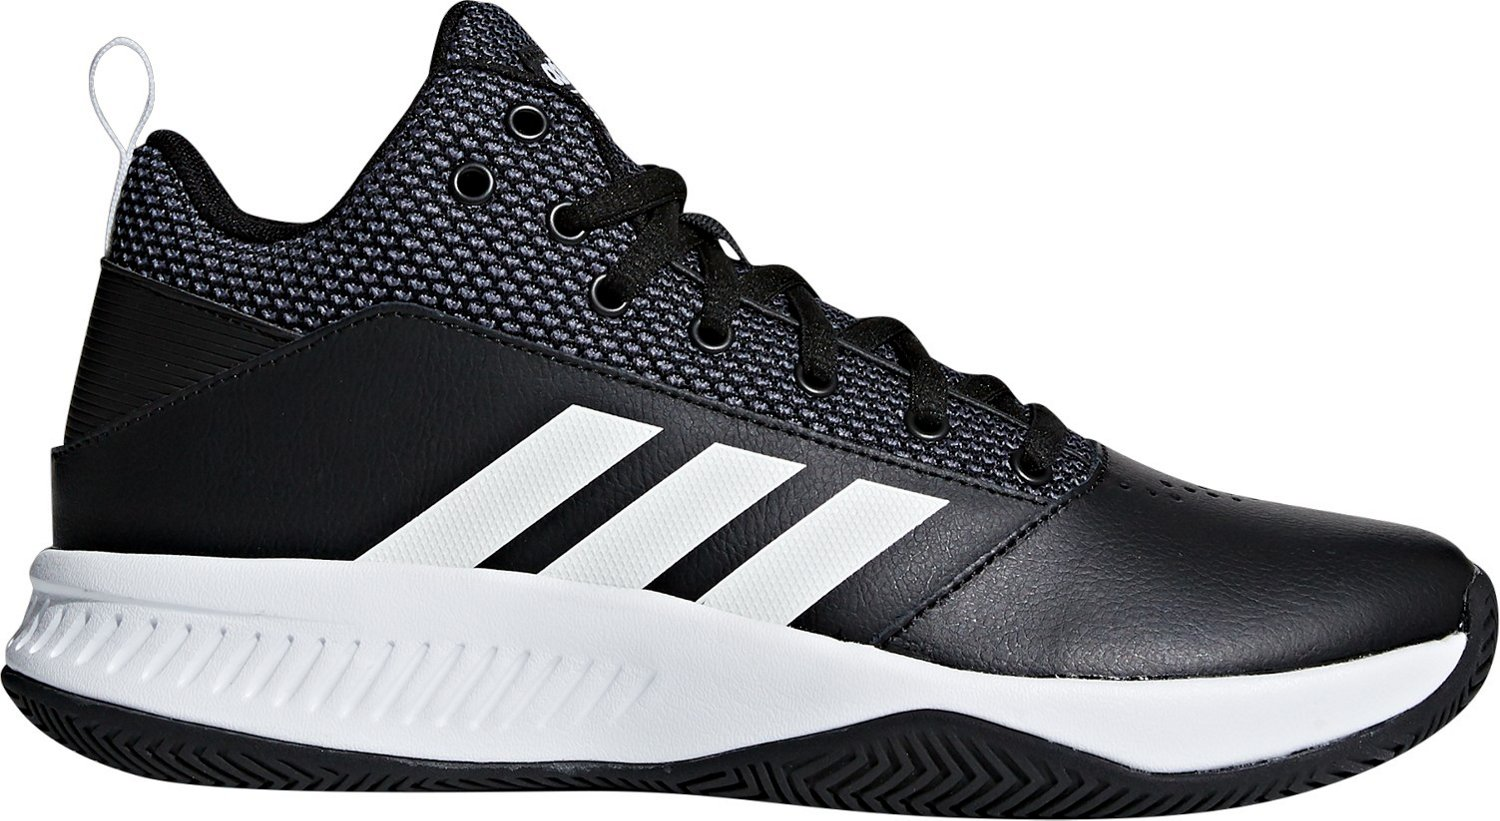 b1709f503124 Display product reviews for adidas Men s Cloudfoam Ilation 2.0 Basketball  Shoes